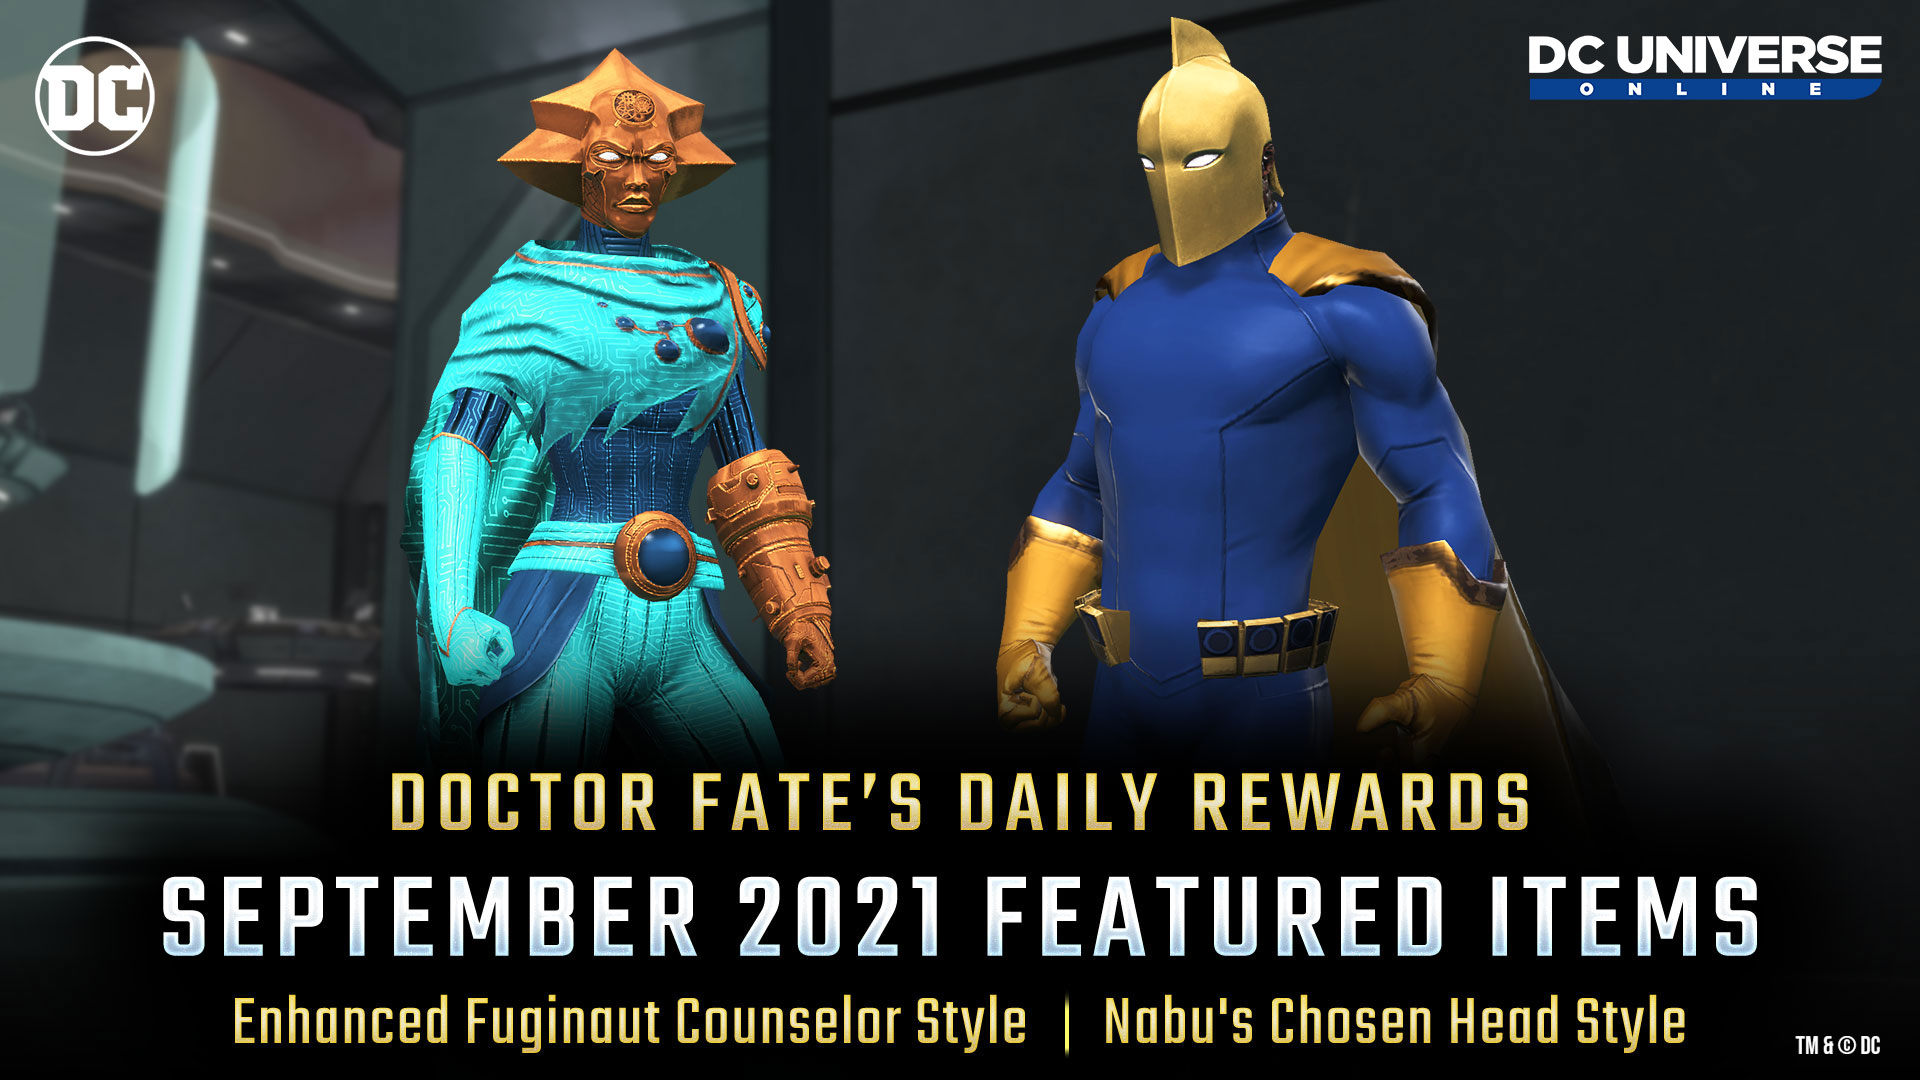 Doctor Fate's Daily Rewards - September 2021